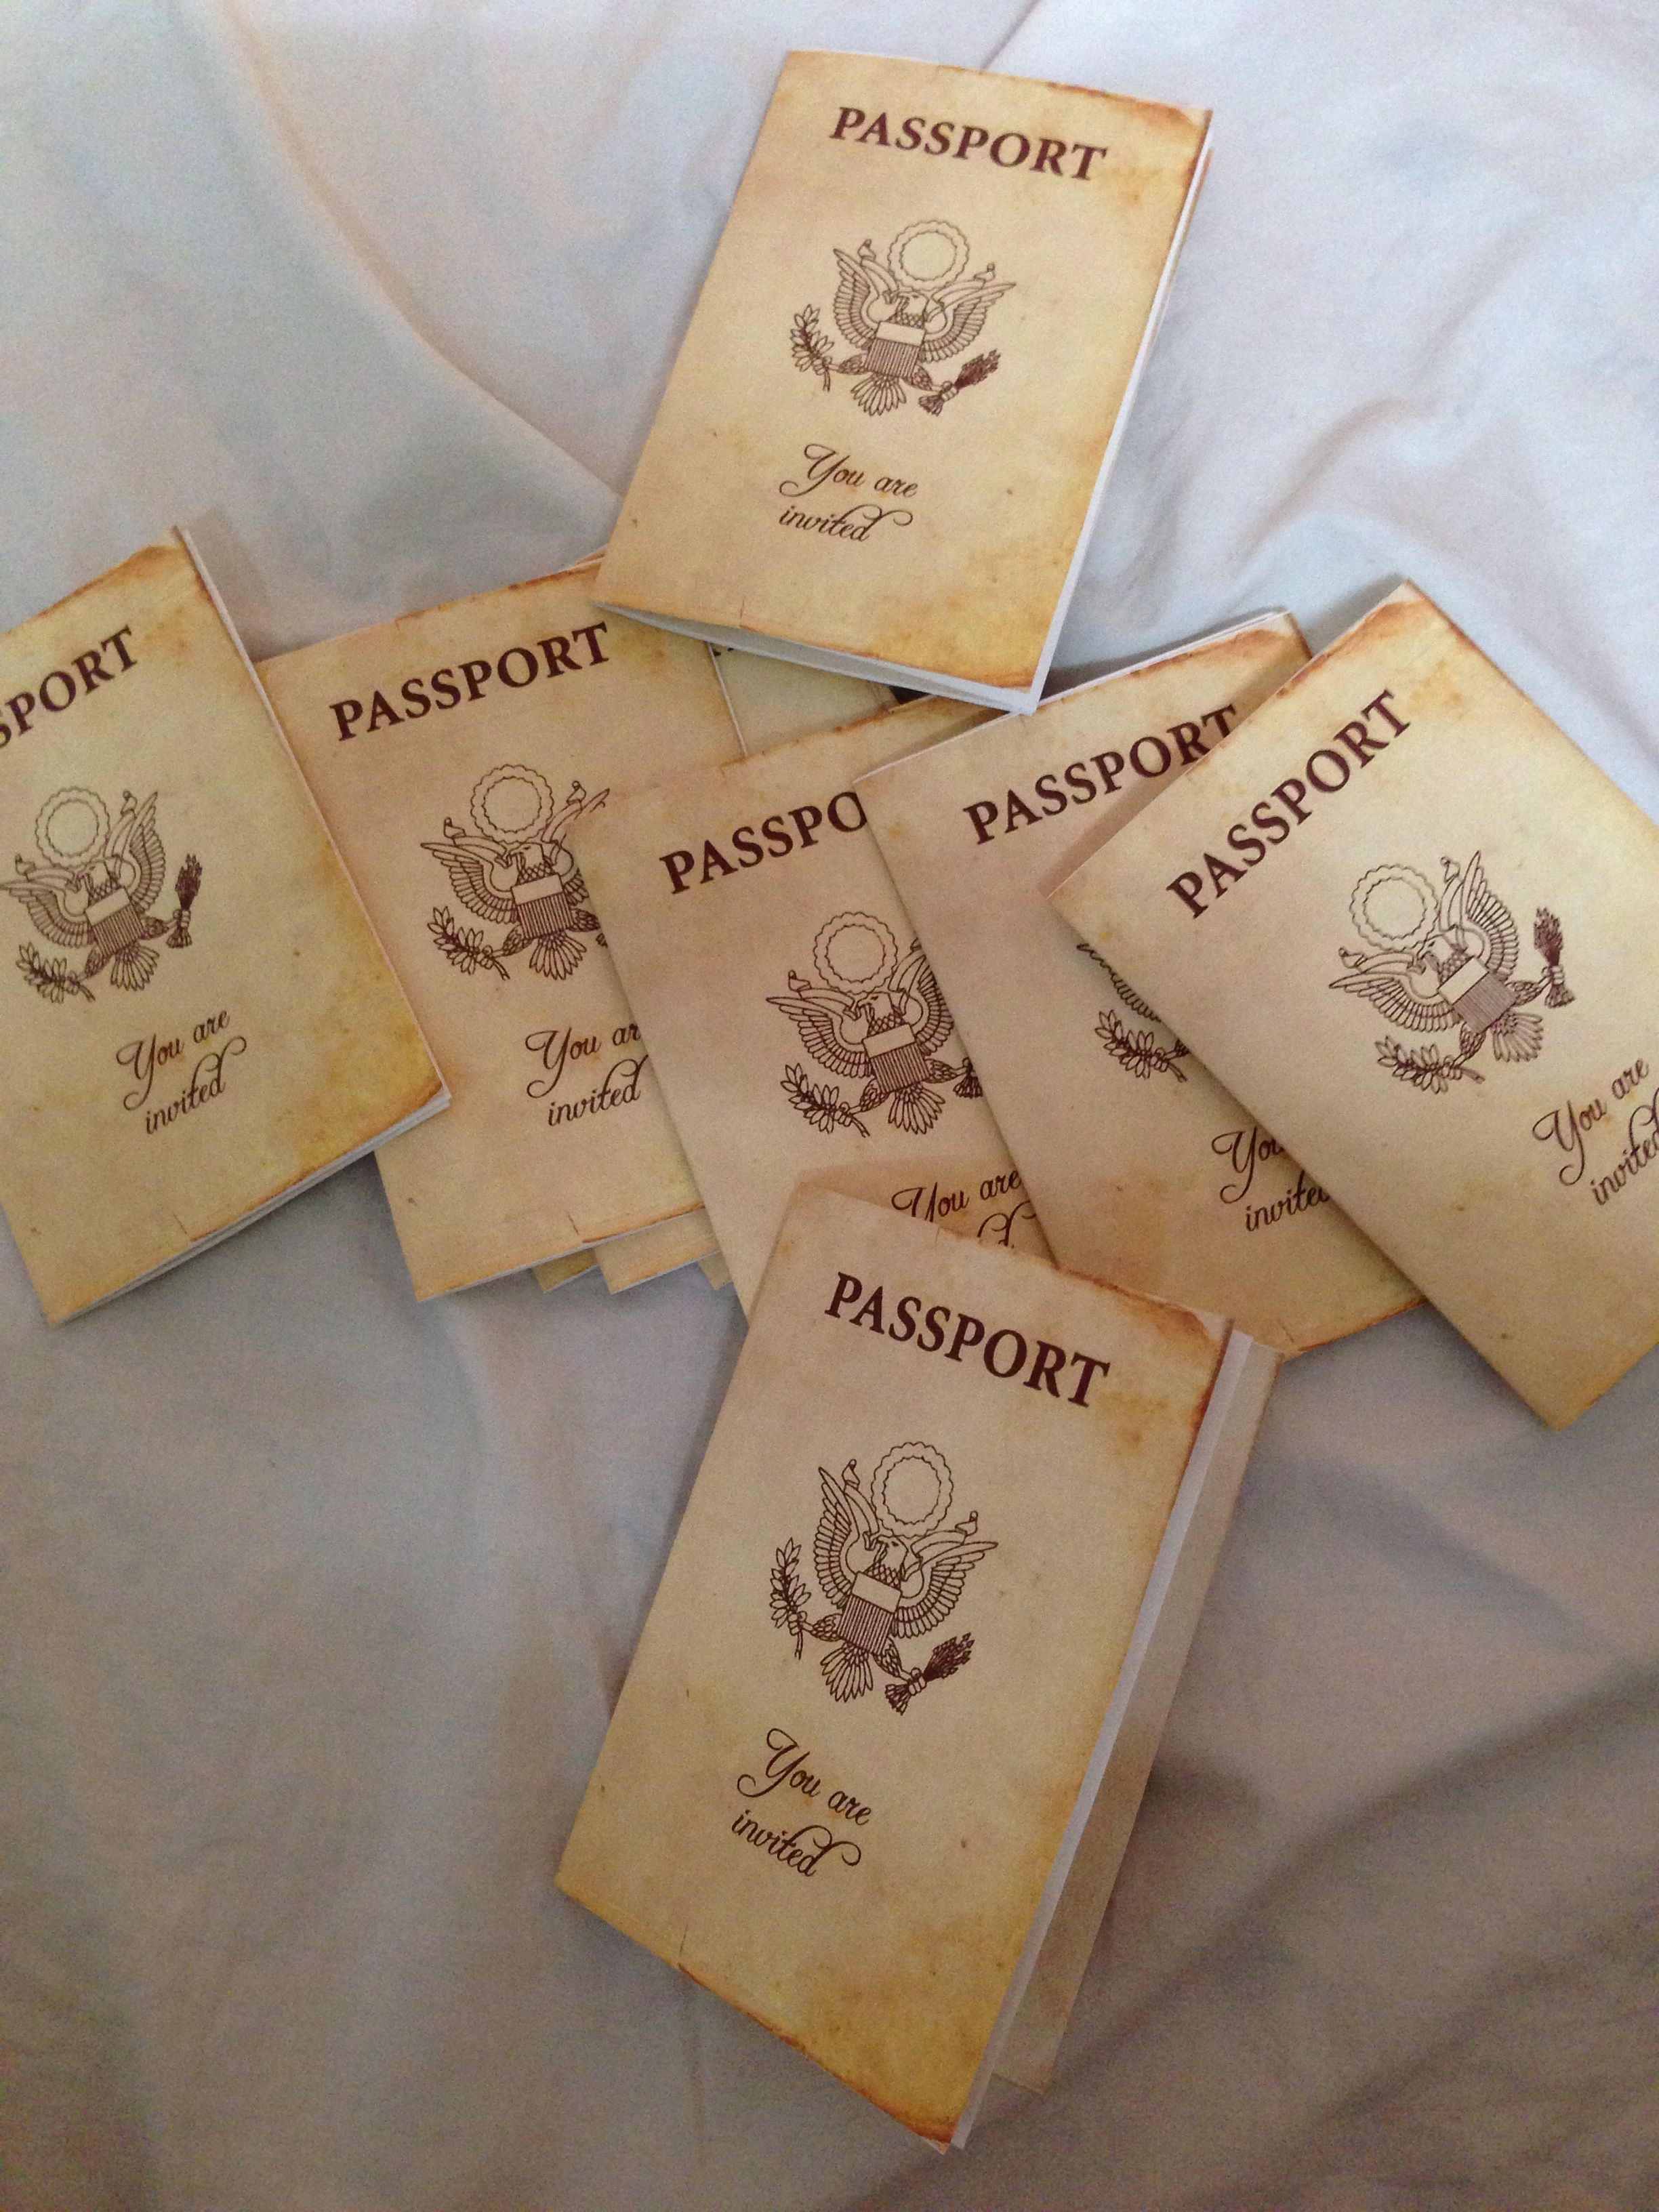 My Passport Invites For A Travel Theme Party Have Guests Check In With Their Passports And Then Go Through EACH Room To Get Stamp At End Of The